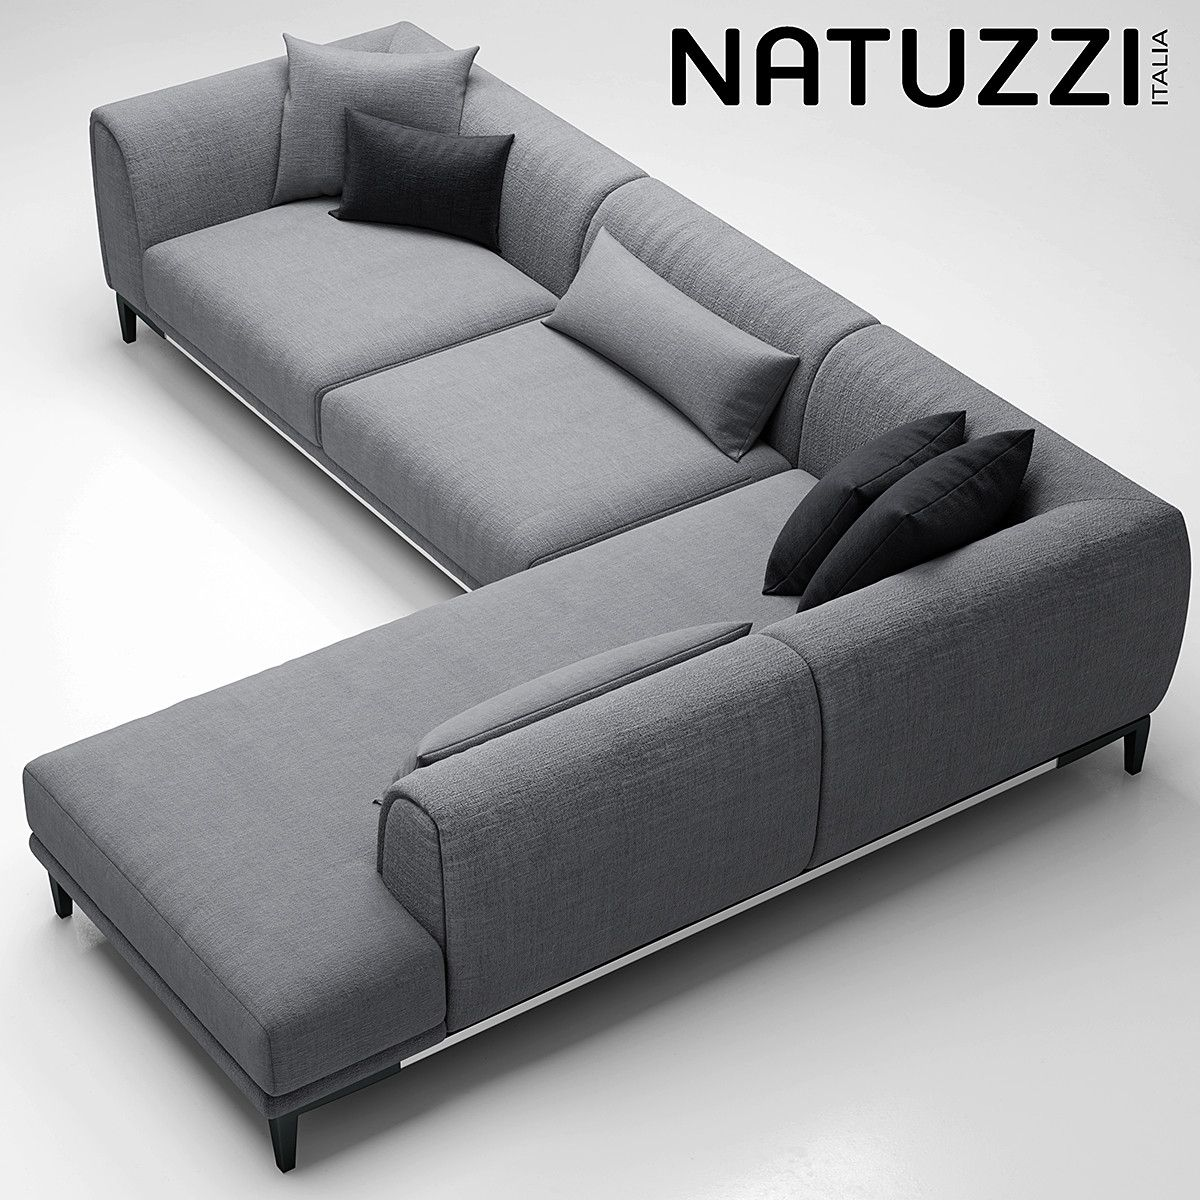 Canapé D'angle Natuzzi Sofa Natuzzi Trevi 3d Model Sofa In 2019 Sofa Living Room